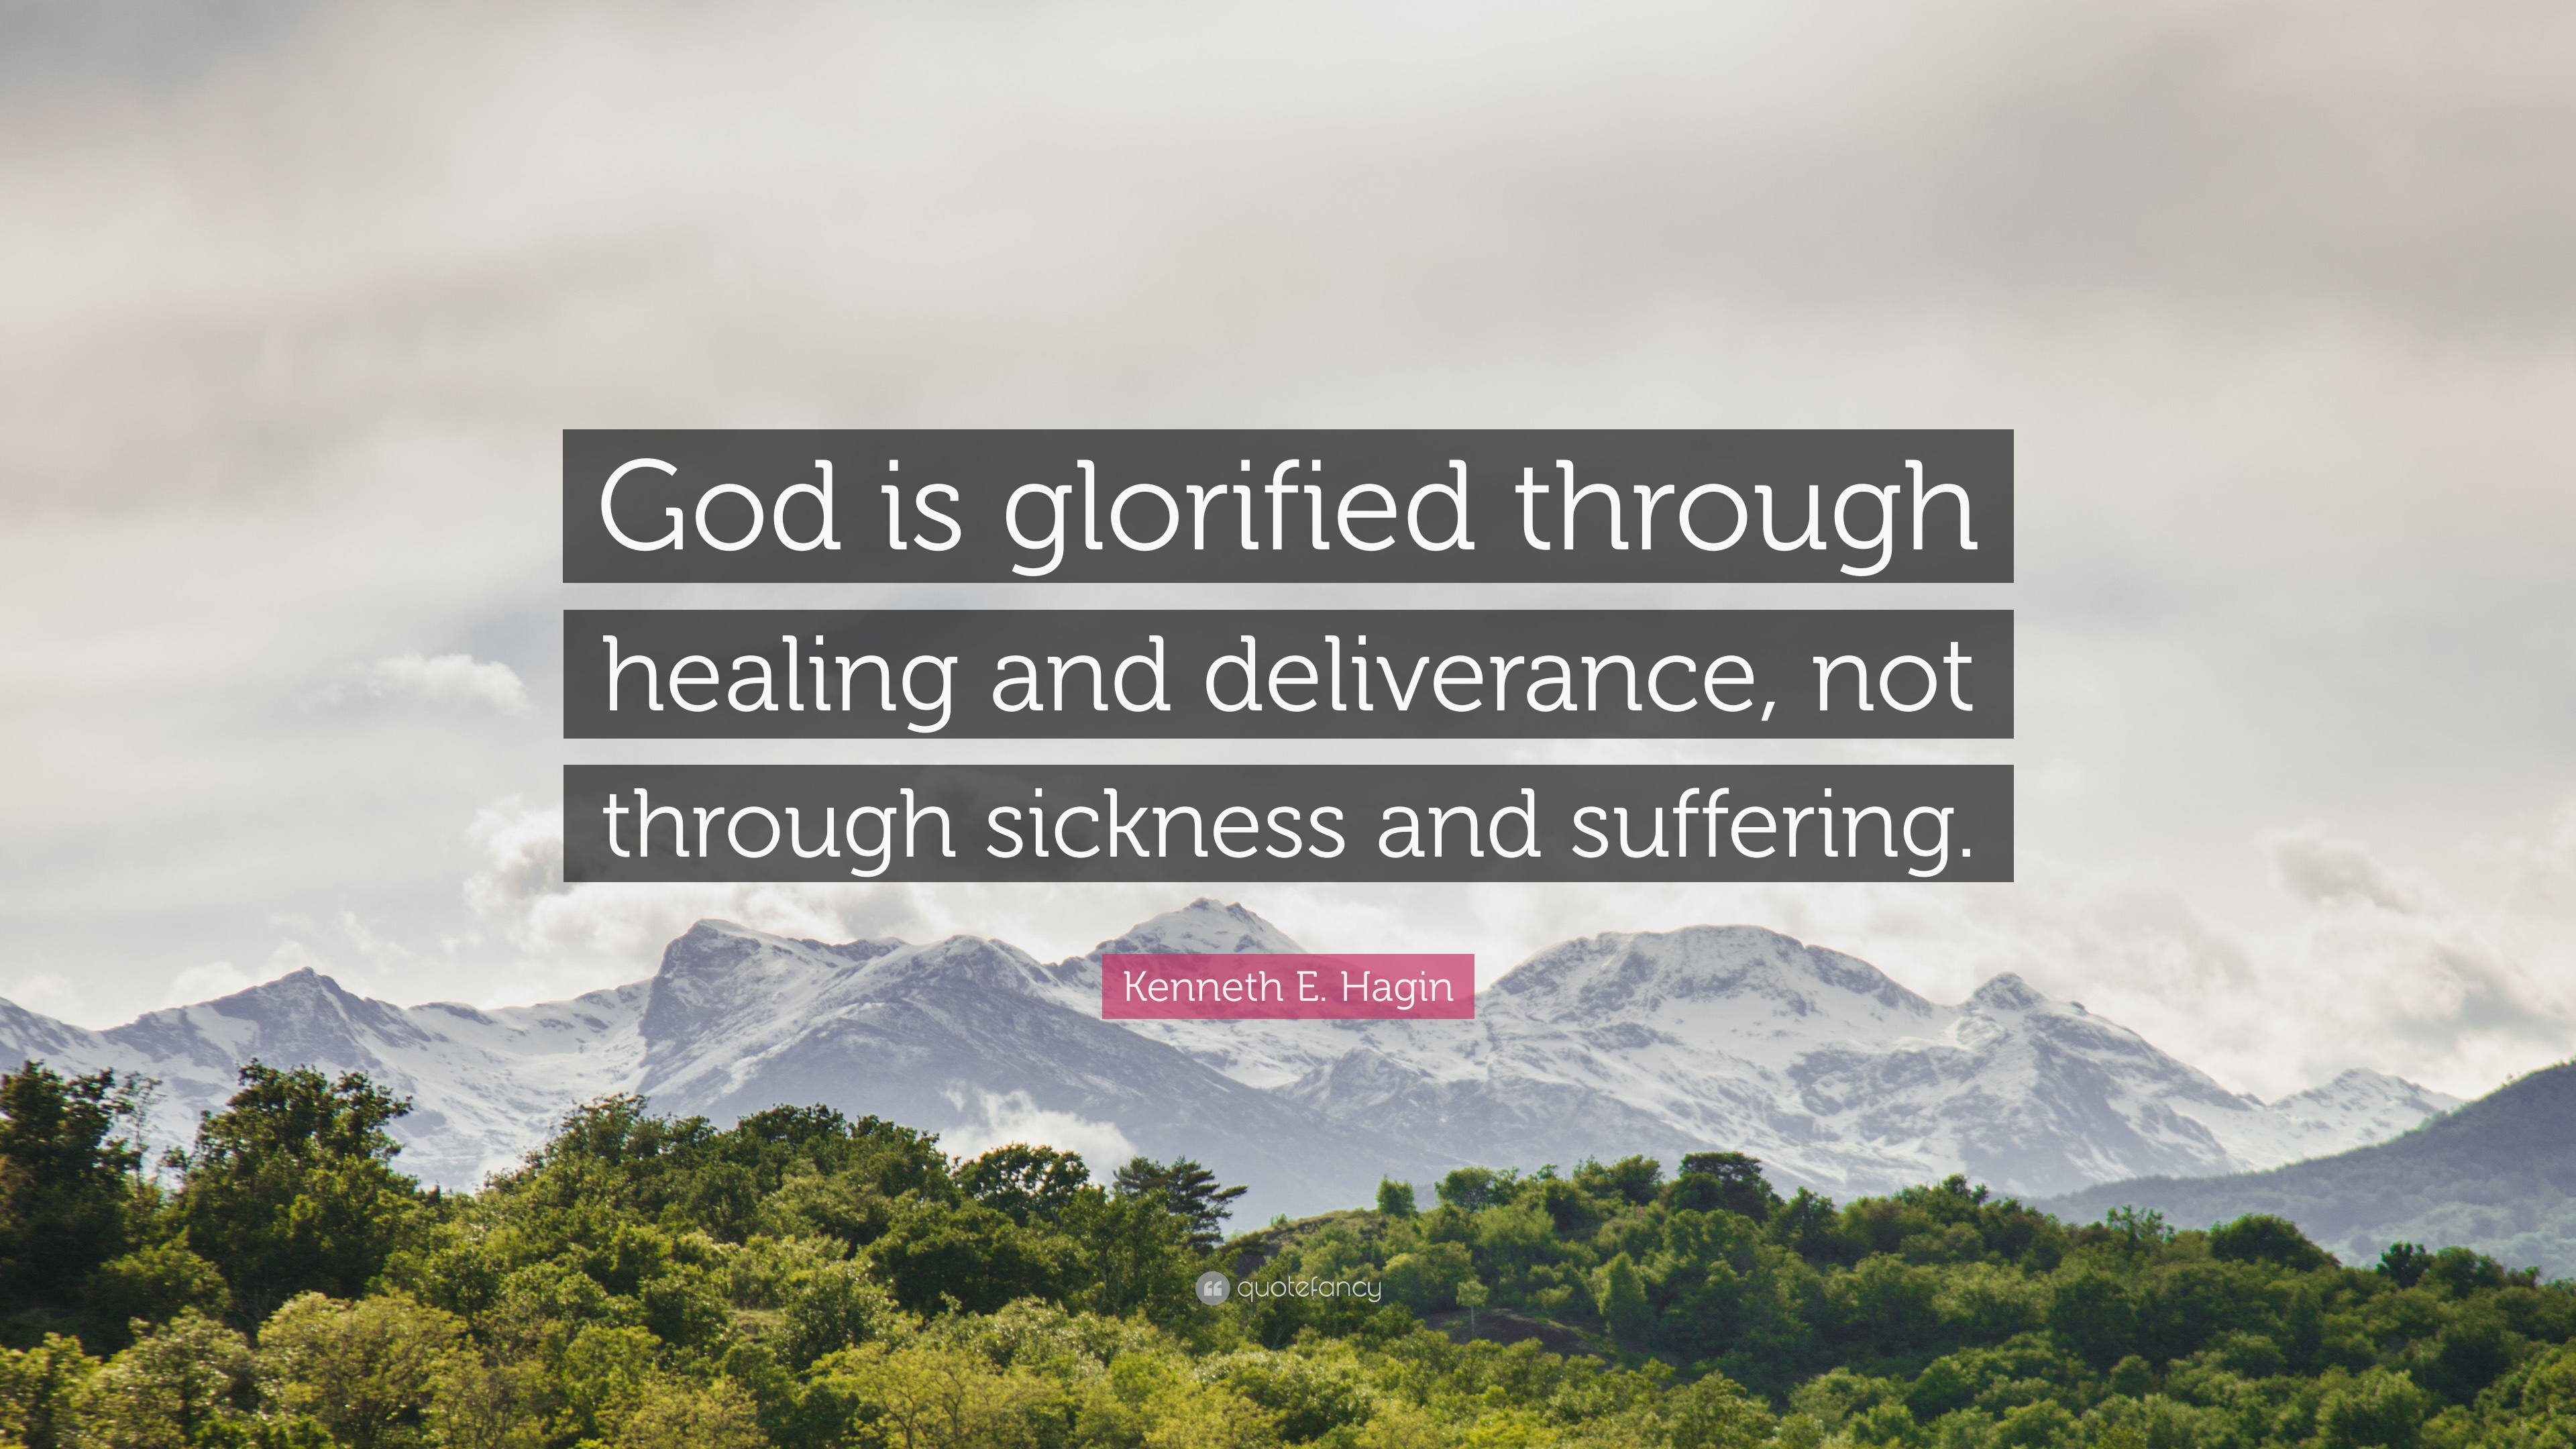 Sick Kenneth E Hagin Quote god Is Glorified Through Healing And Deliverance Not Quotefancy Kenneth E Hagin Quote god Is Glorified Through Healing And